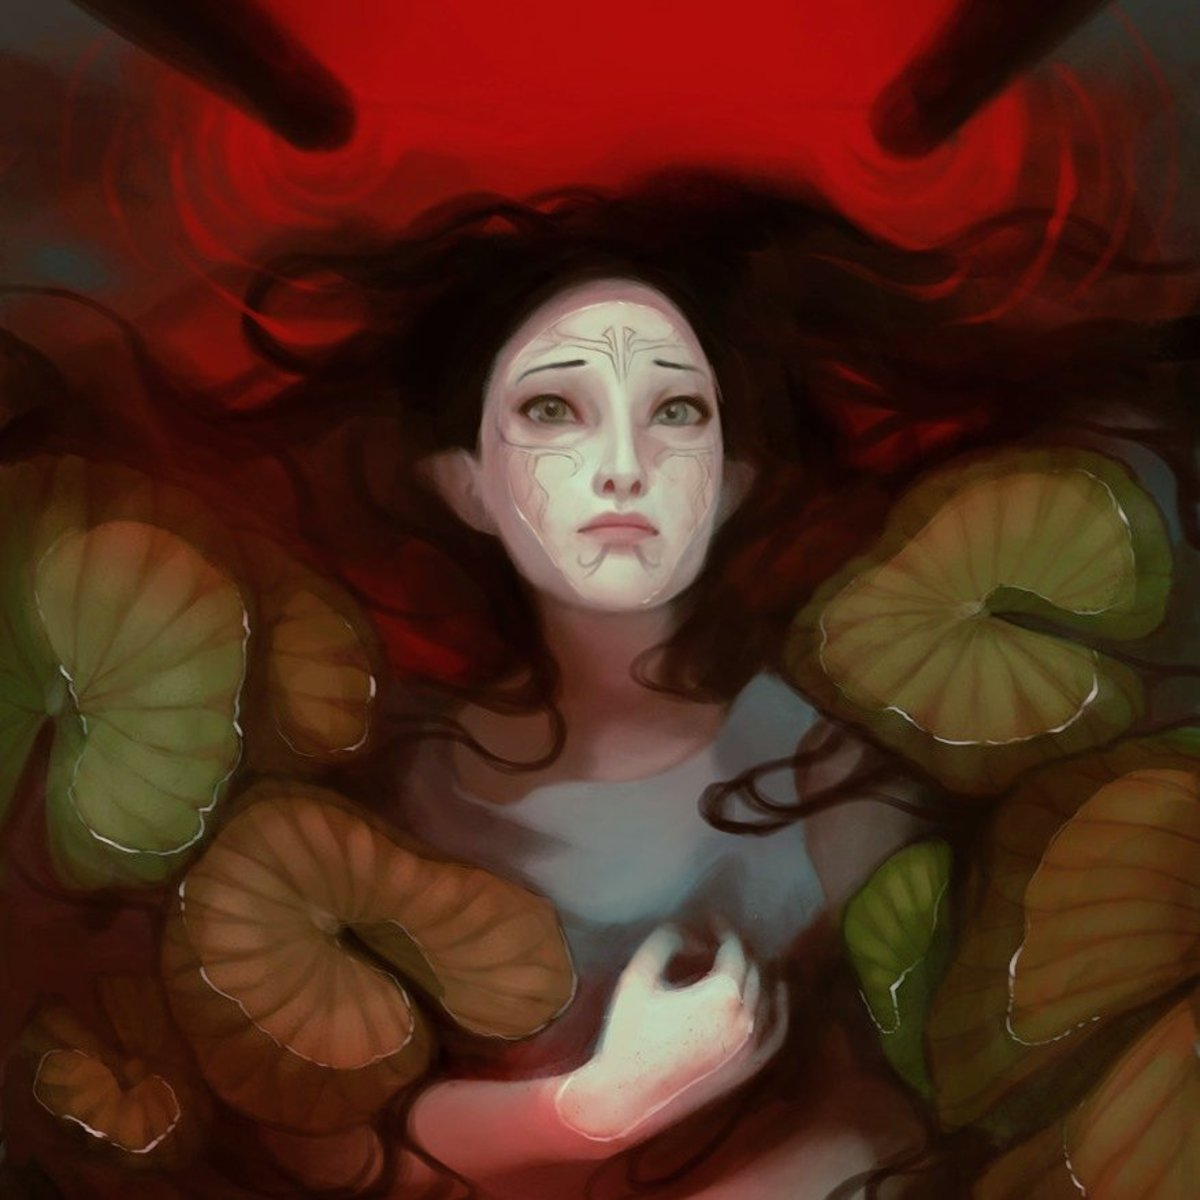 Fan art of sad Merrill swimming in blood.